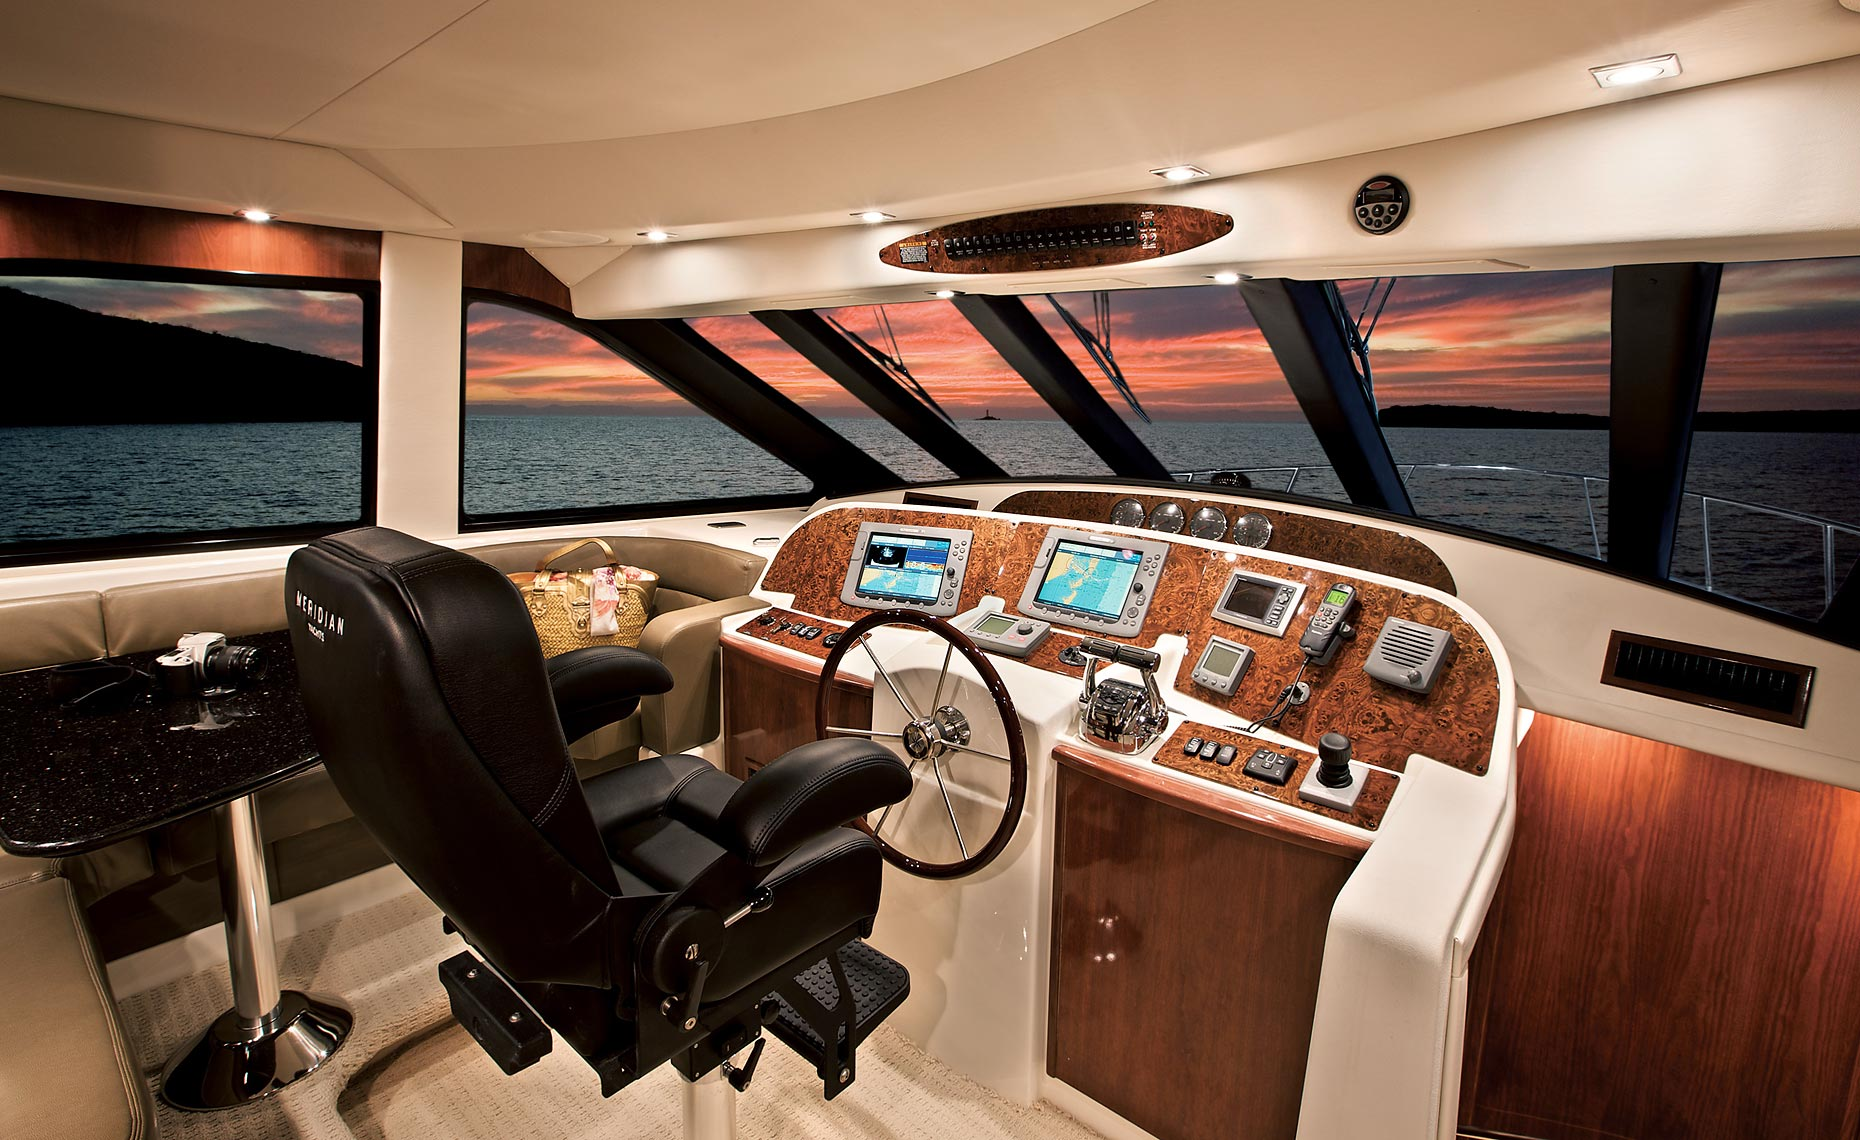 Salon Interior Megayacht Photographer Steinberger